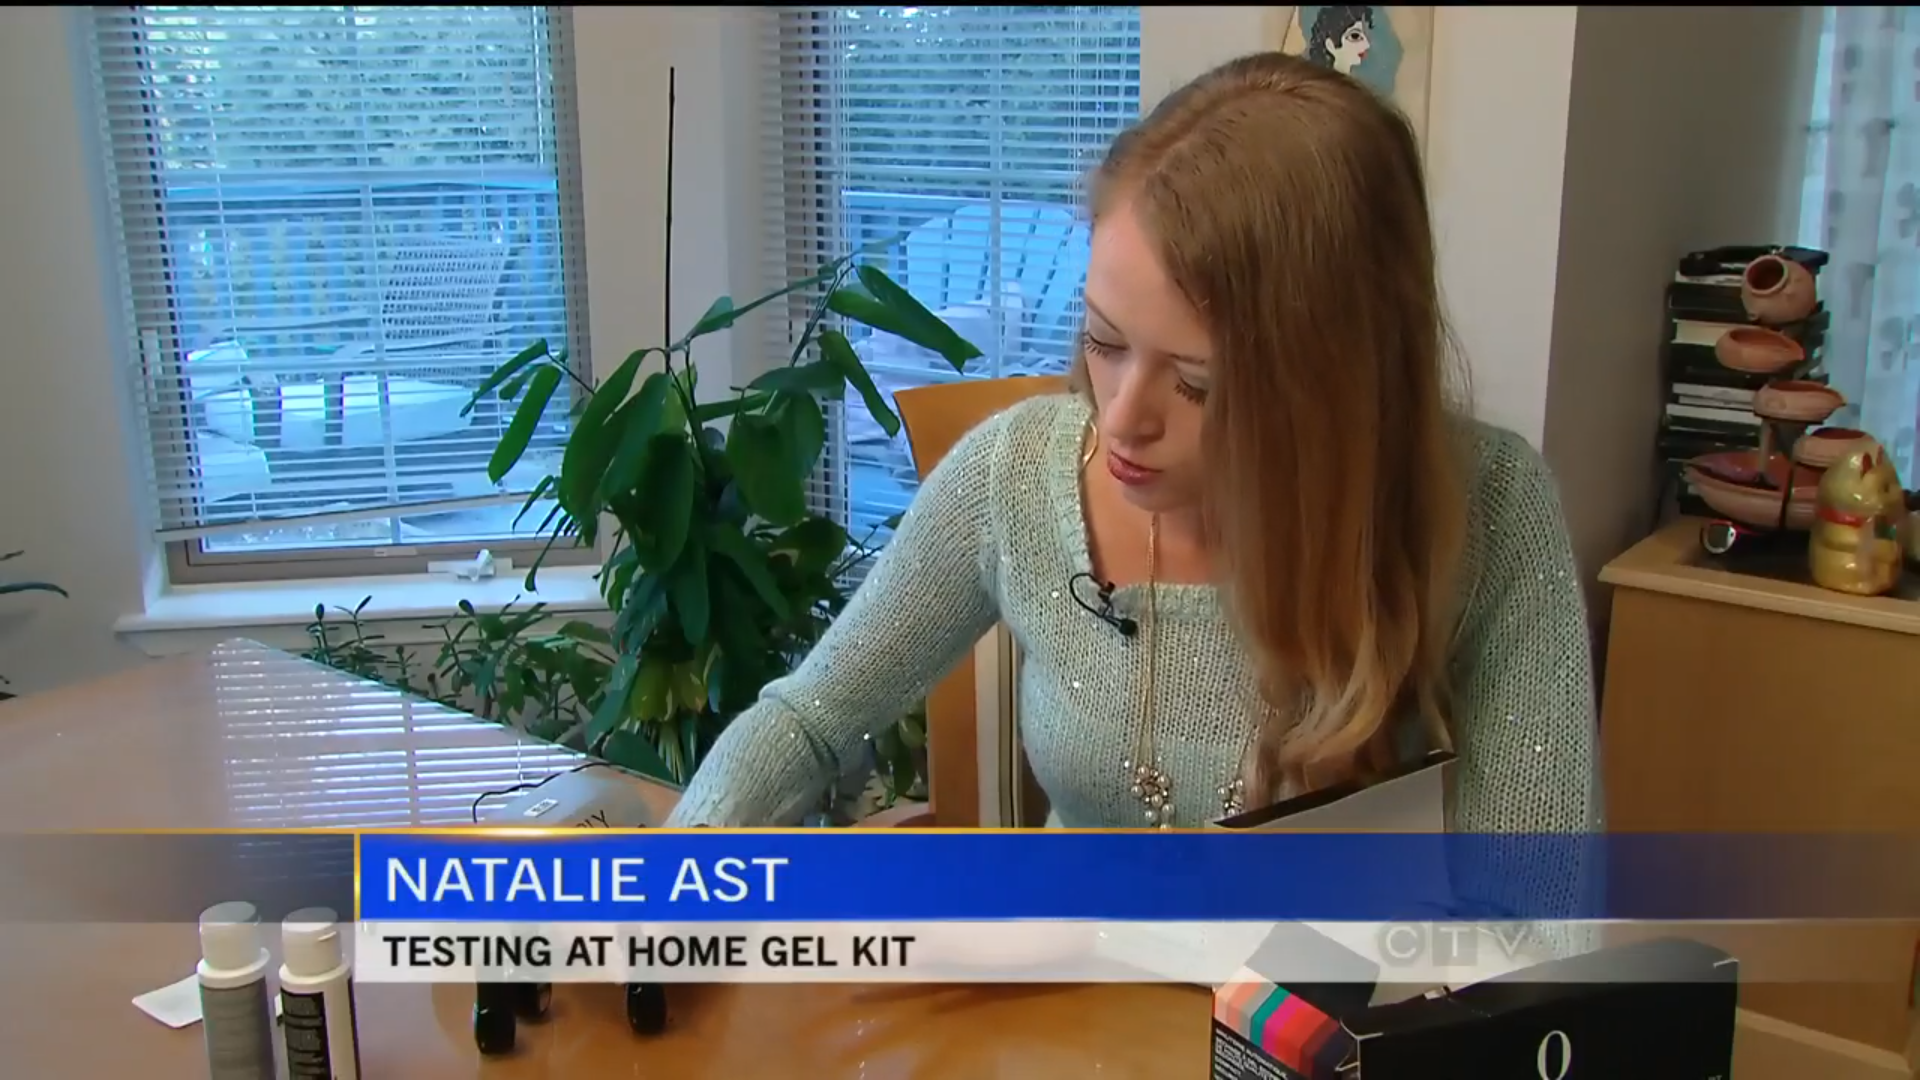 Quo By Orly Gel Nails Review On Ctv News Nataliastyle Gel Nails Home Gel Nail Kit Gel Nail Kit